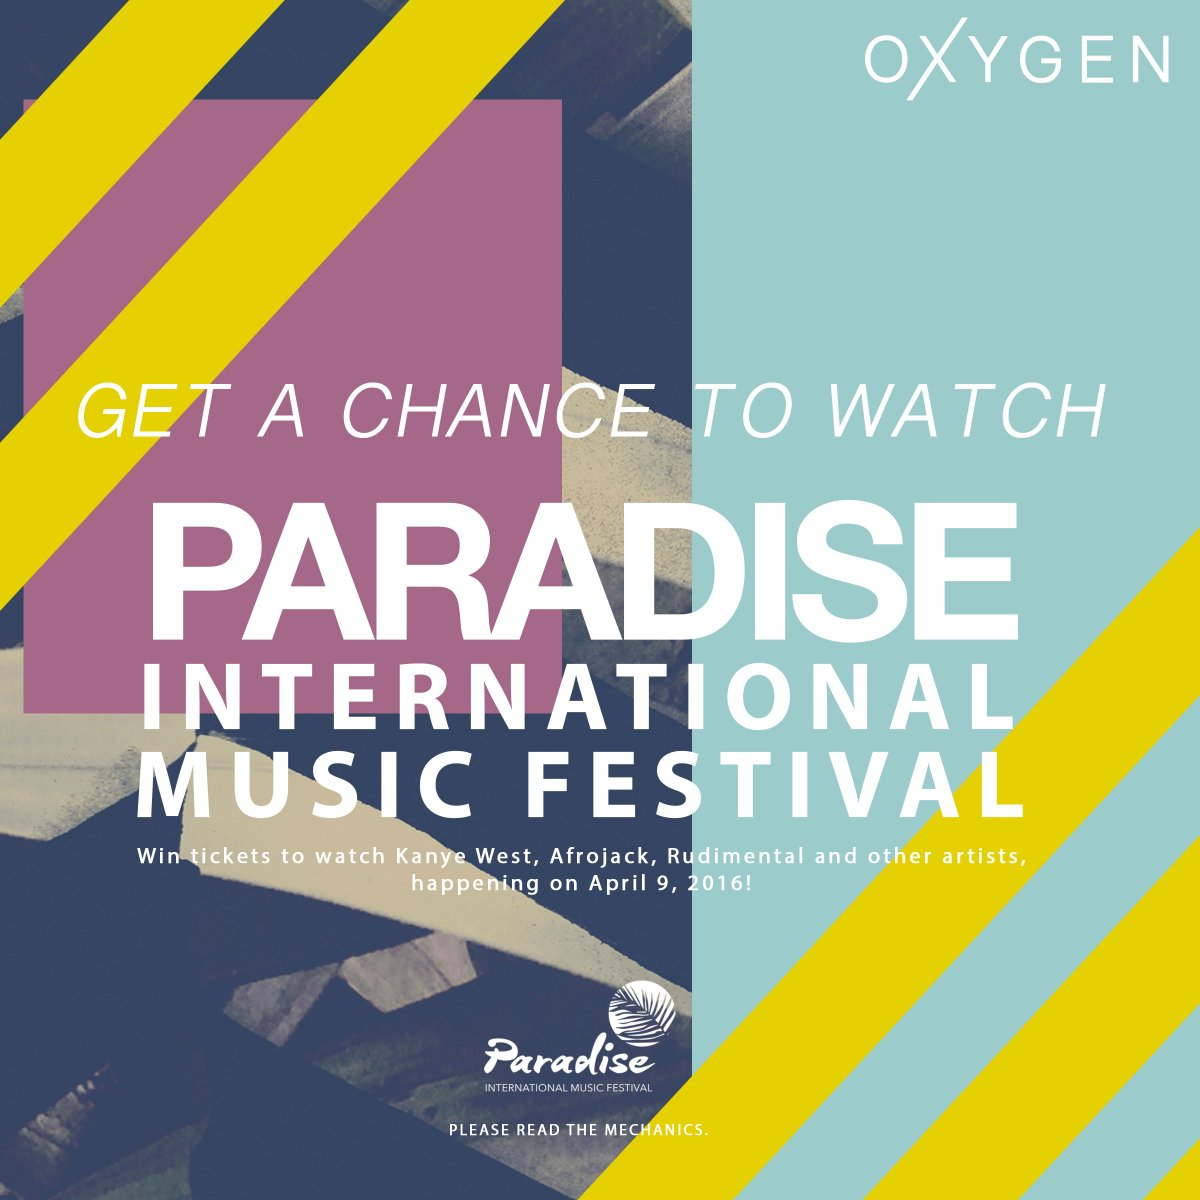 Want to watch @paradiseimf? Check us out on https://t.co/CFYyPH6cnJ to know how to get FREE TICKETS! #OXGNPLAY https://t.co/qaiQ0bUEyB